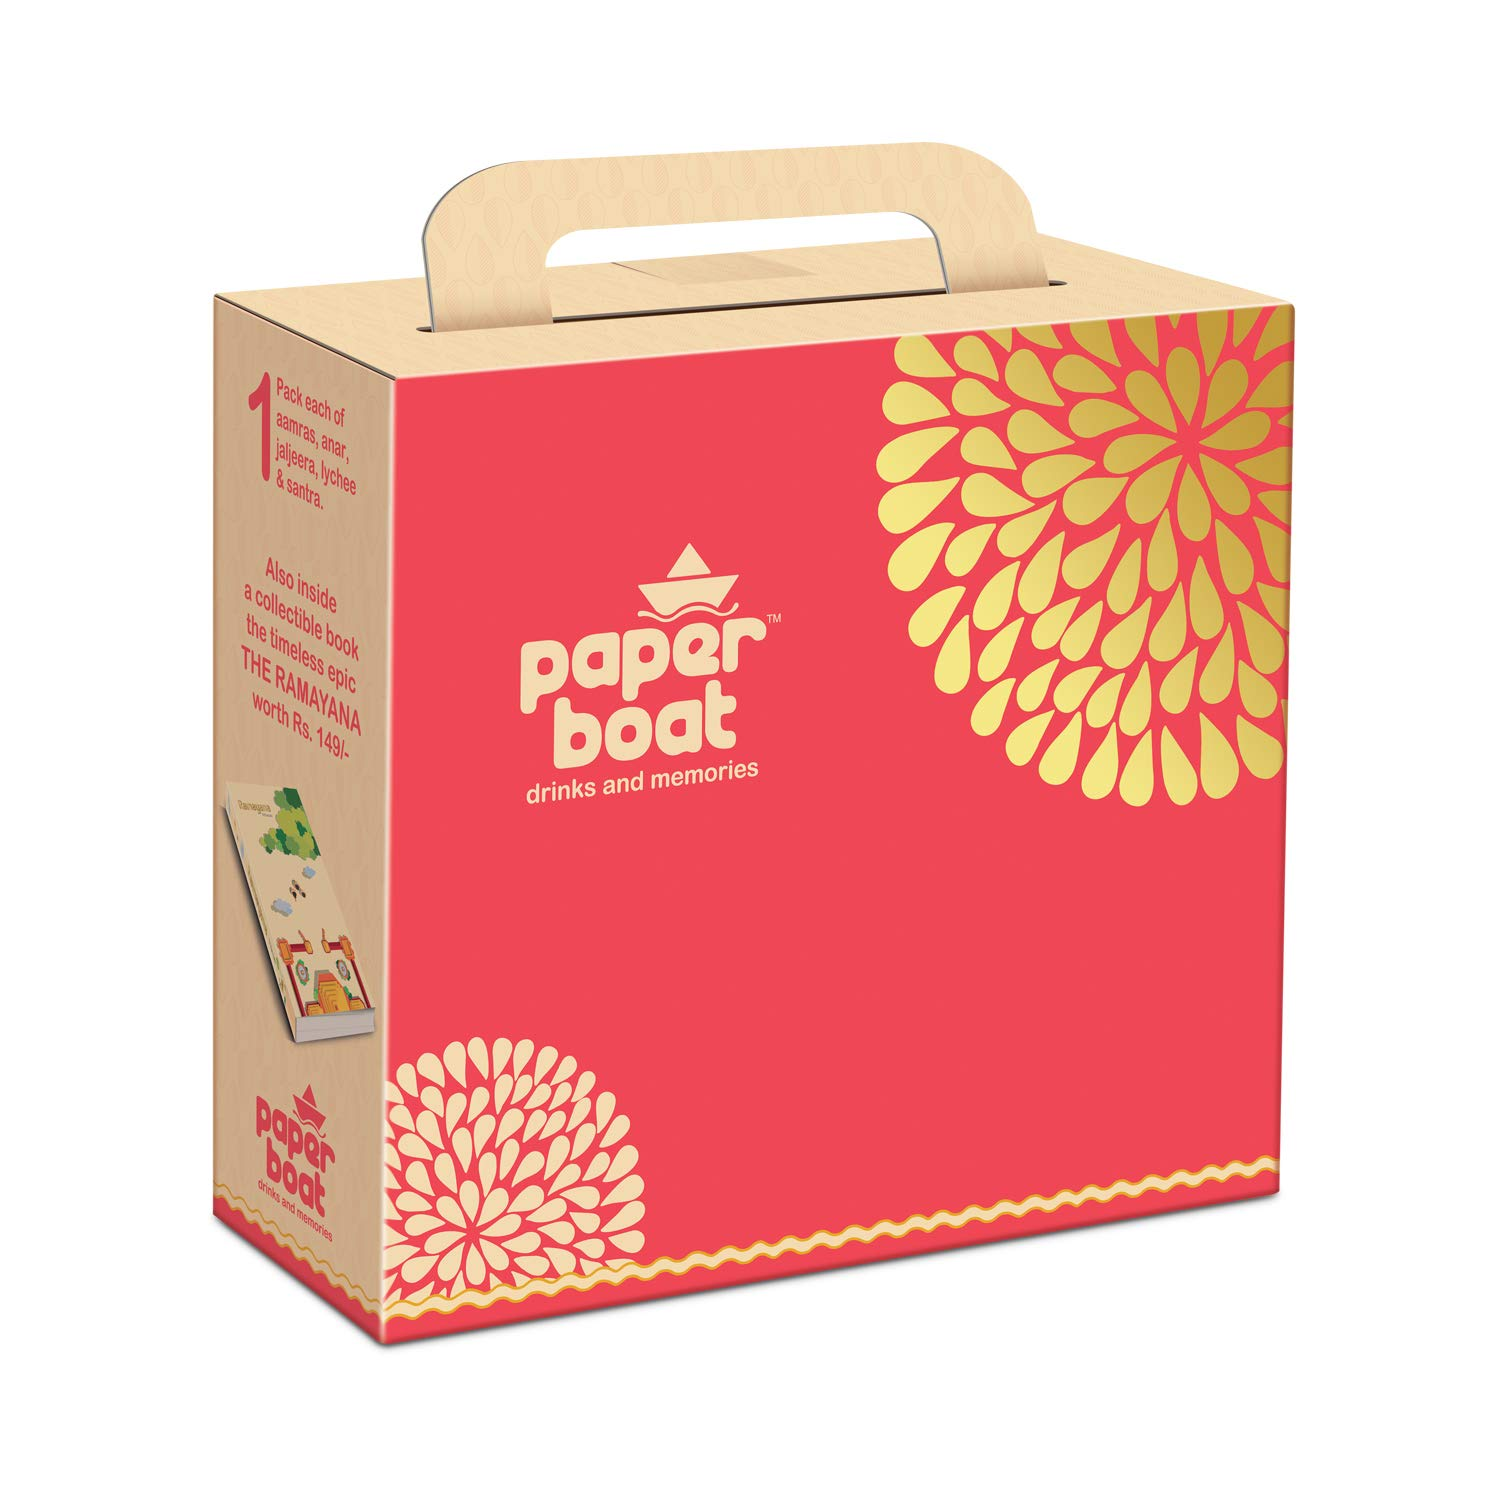 Paper Boat Festive Gift Pack, Assortment of Fruit Juices with Ramayan Book, 5 Flavours( Anar, Aamras, Jaljeera, Lychee, Orange ) Pouch, 1000 ml